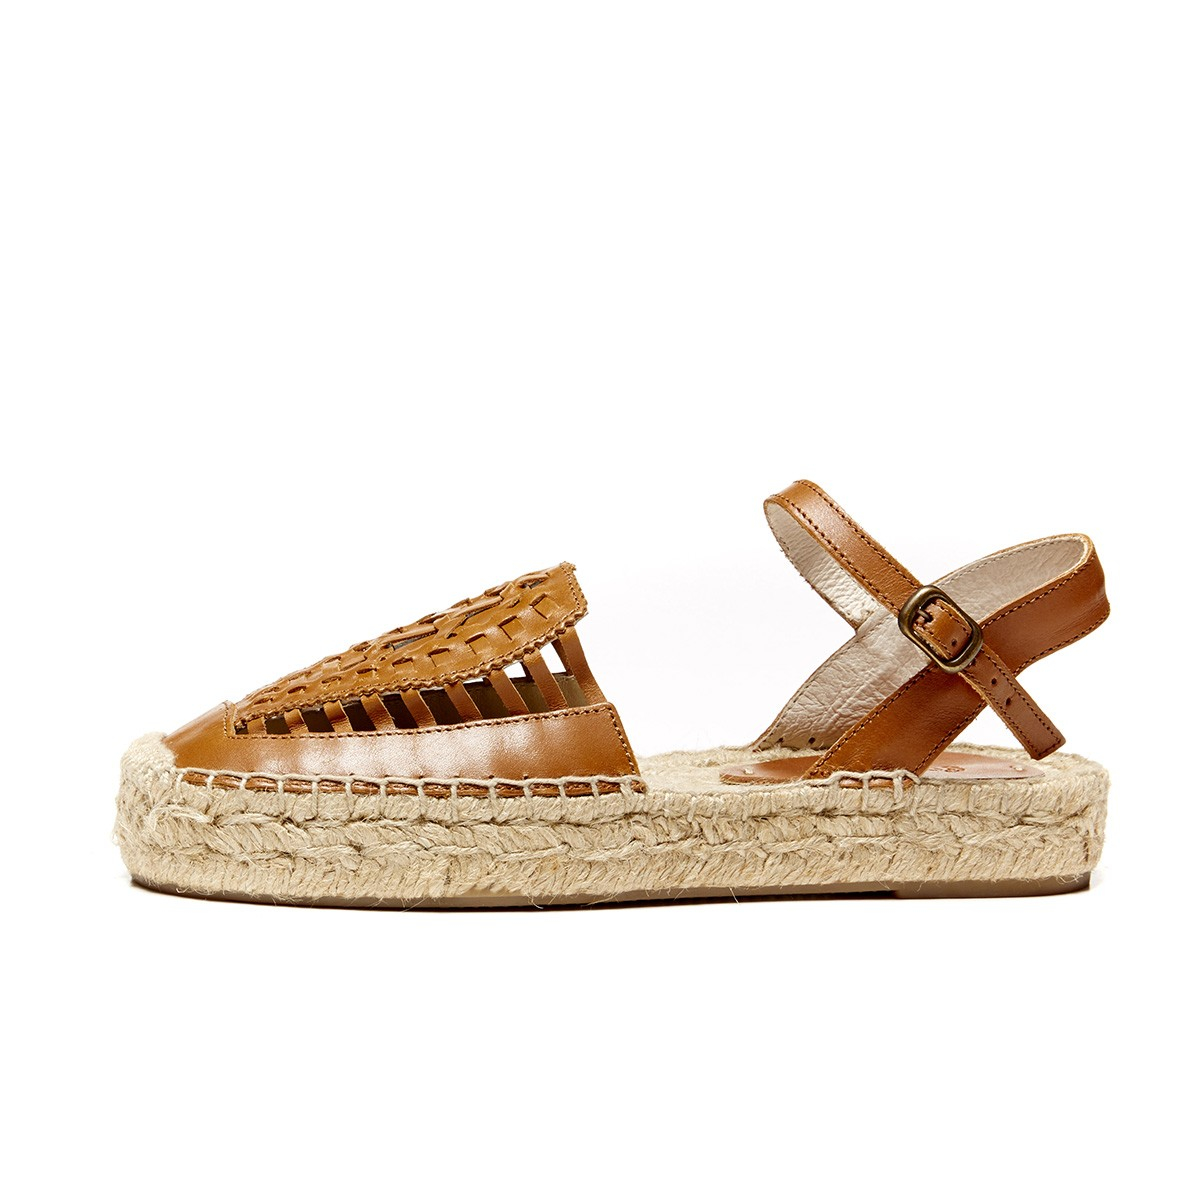 7083858e3c17 Lyst - Soludos Leather Platform Huarache Sandal in Brown